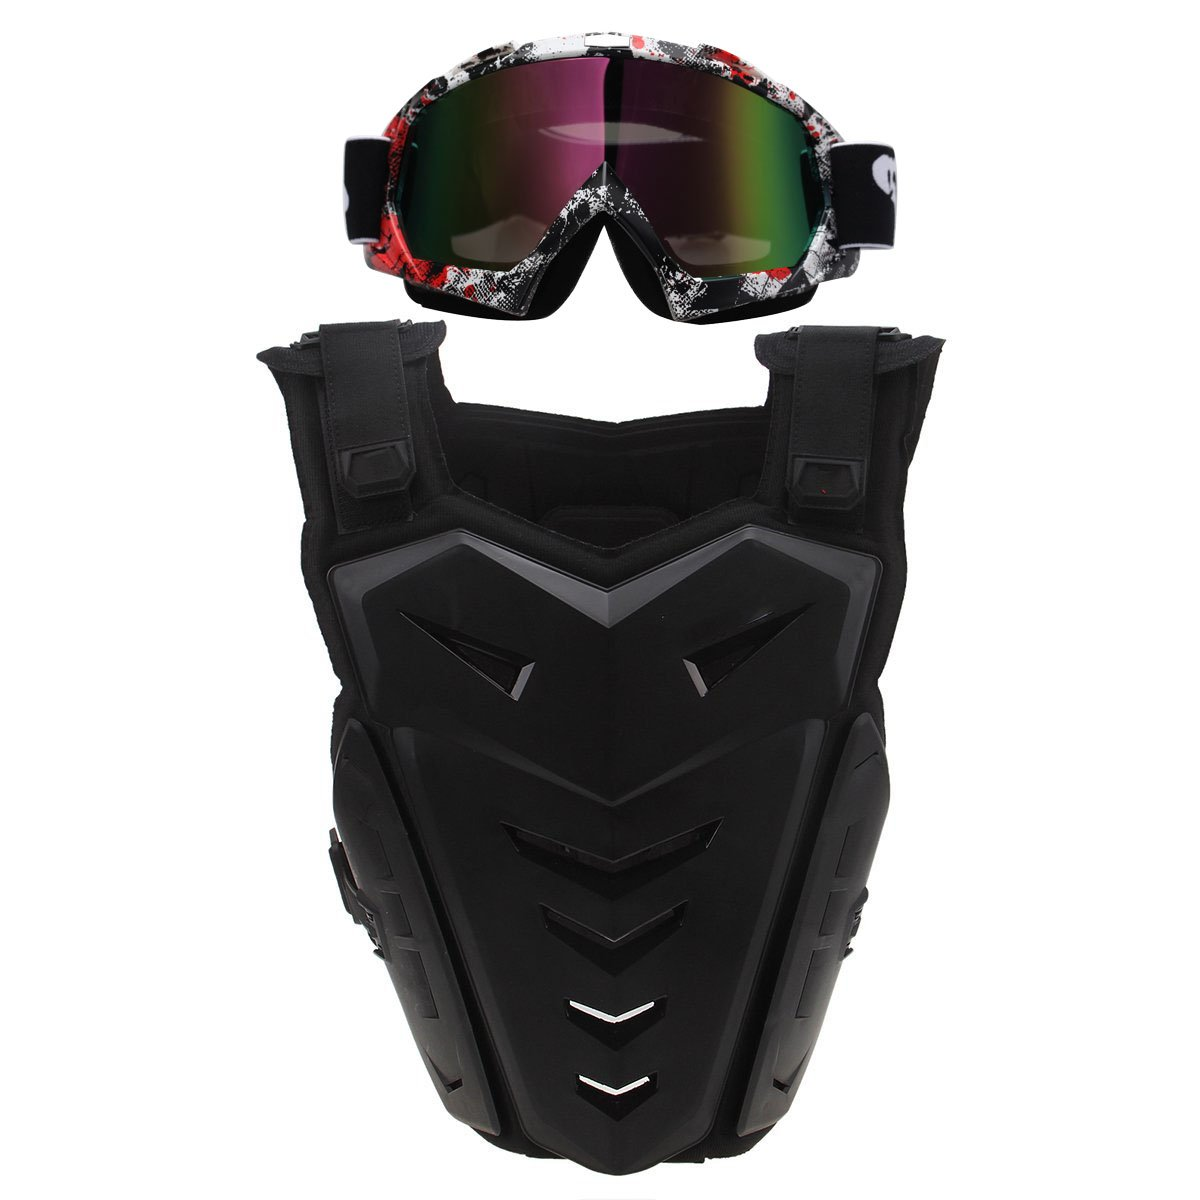 Chest Back Protector with Goggles,POSSBAY Motorcycle Gear Armor Glasses Set L Black for Scooter Motocross Dirt Bike Skiing Riding Cycling Skating